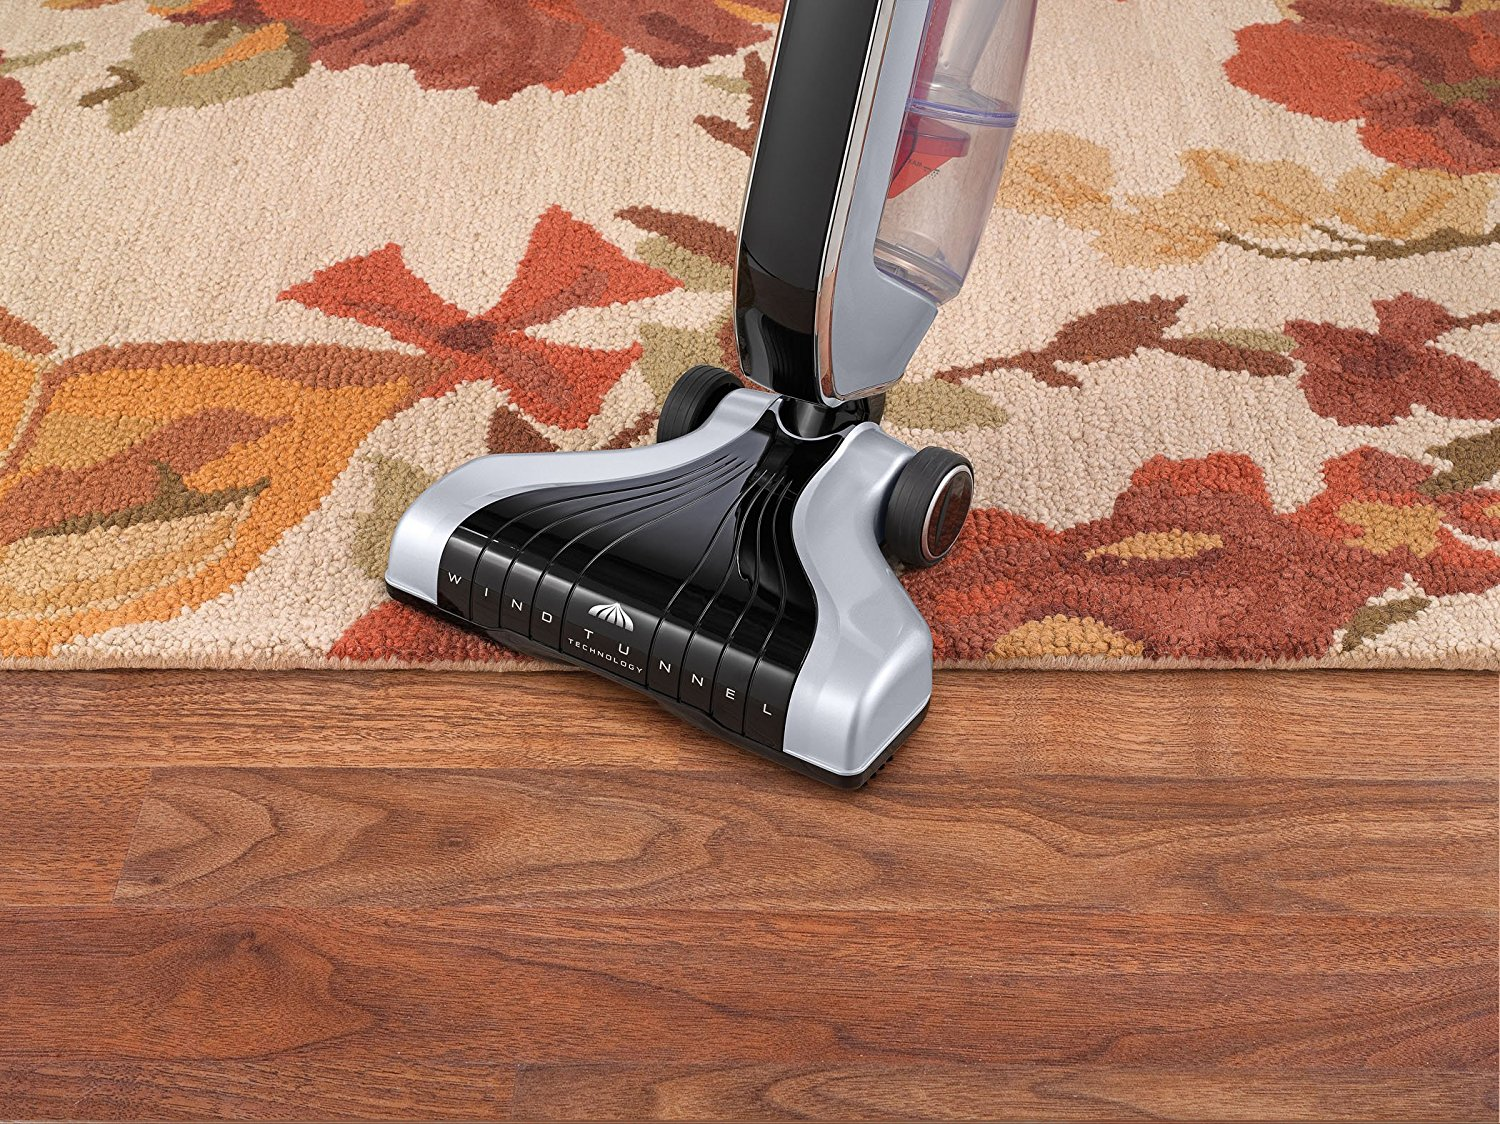 Hoover Linx BH50010 Cordless Stick Vacuum Cleaner Capacity